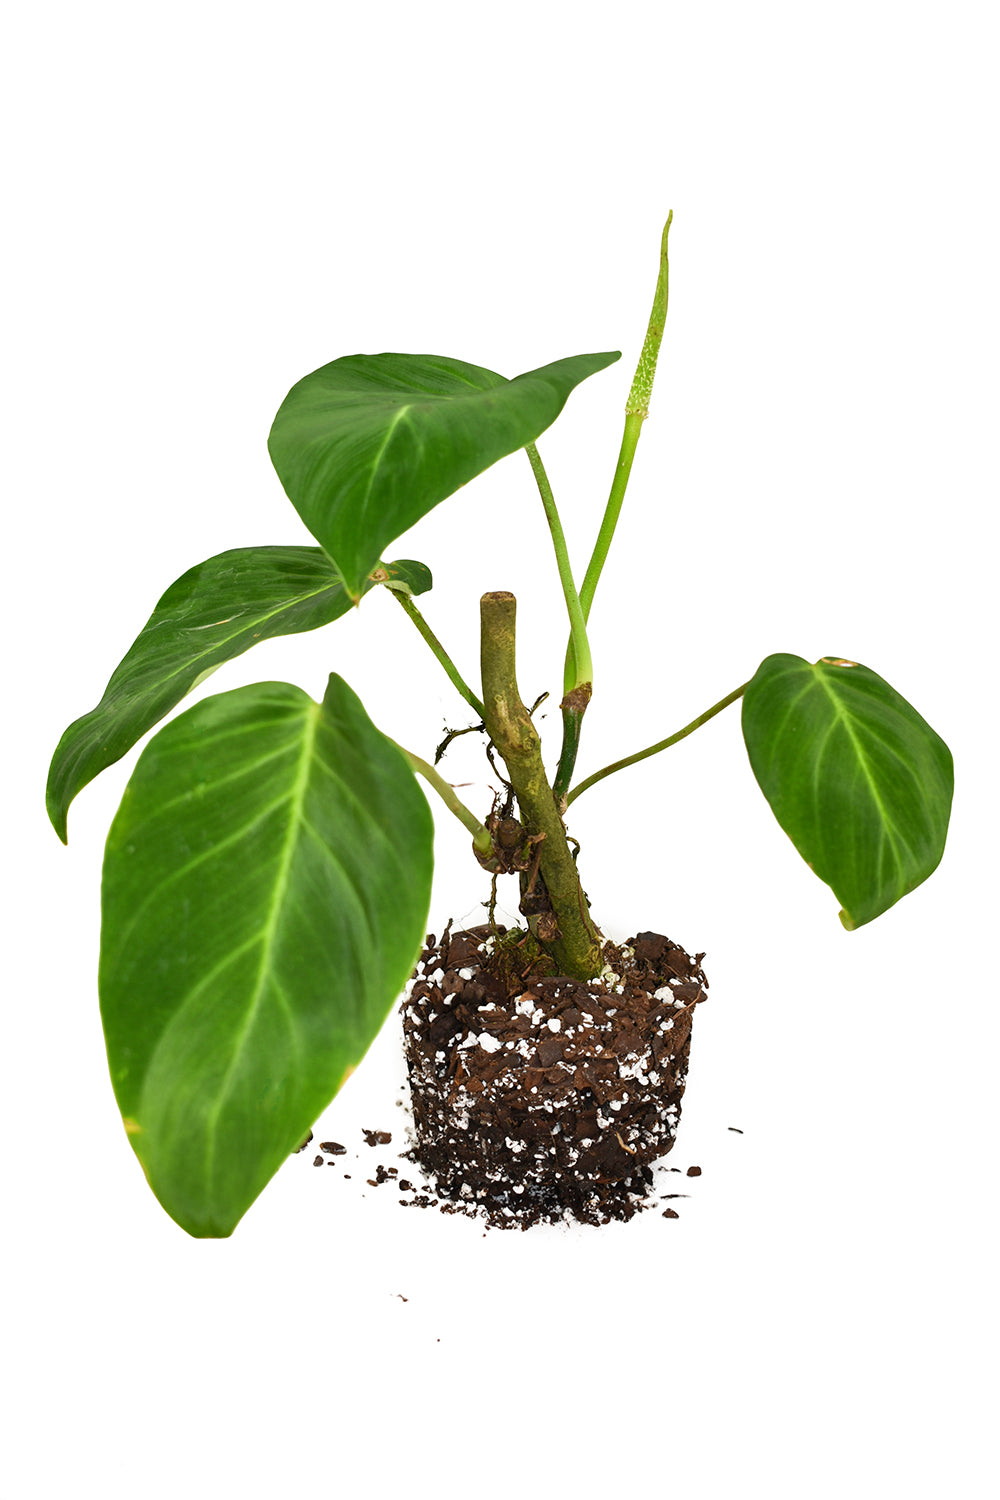 philodendron nanegalense